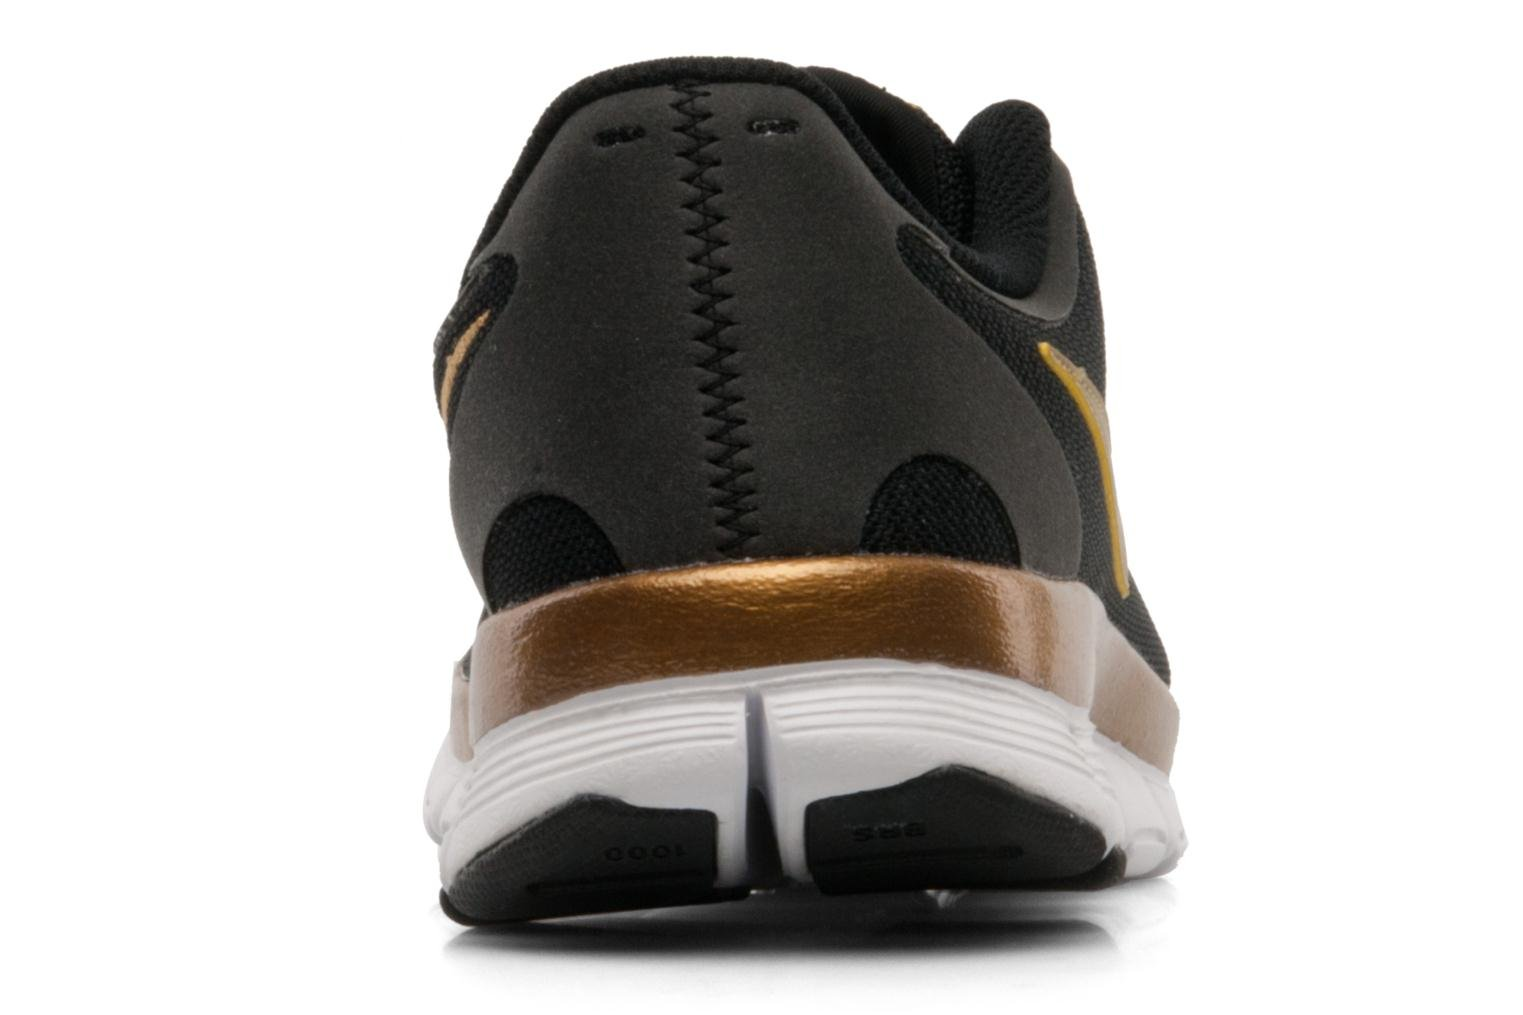 Wmns Nike Free 5.0 V4 Black/Metallic Gold-White-Black